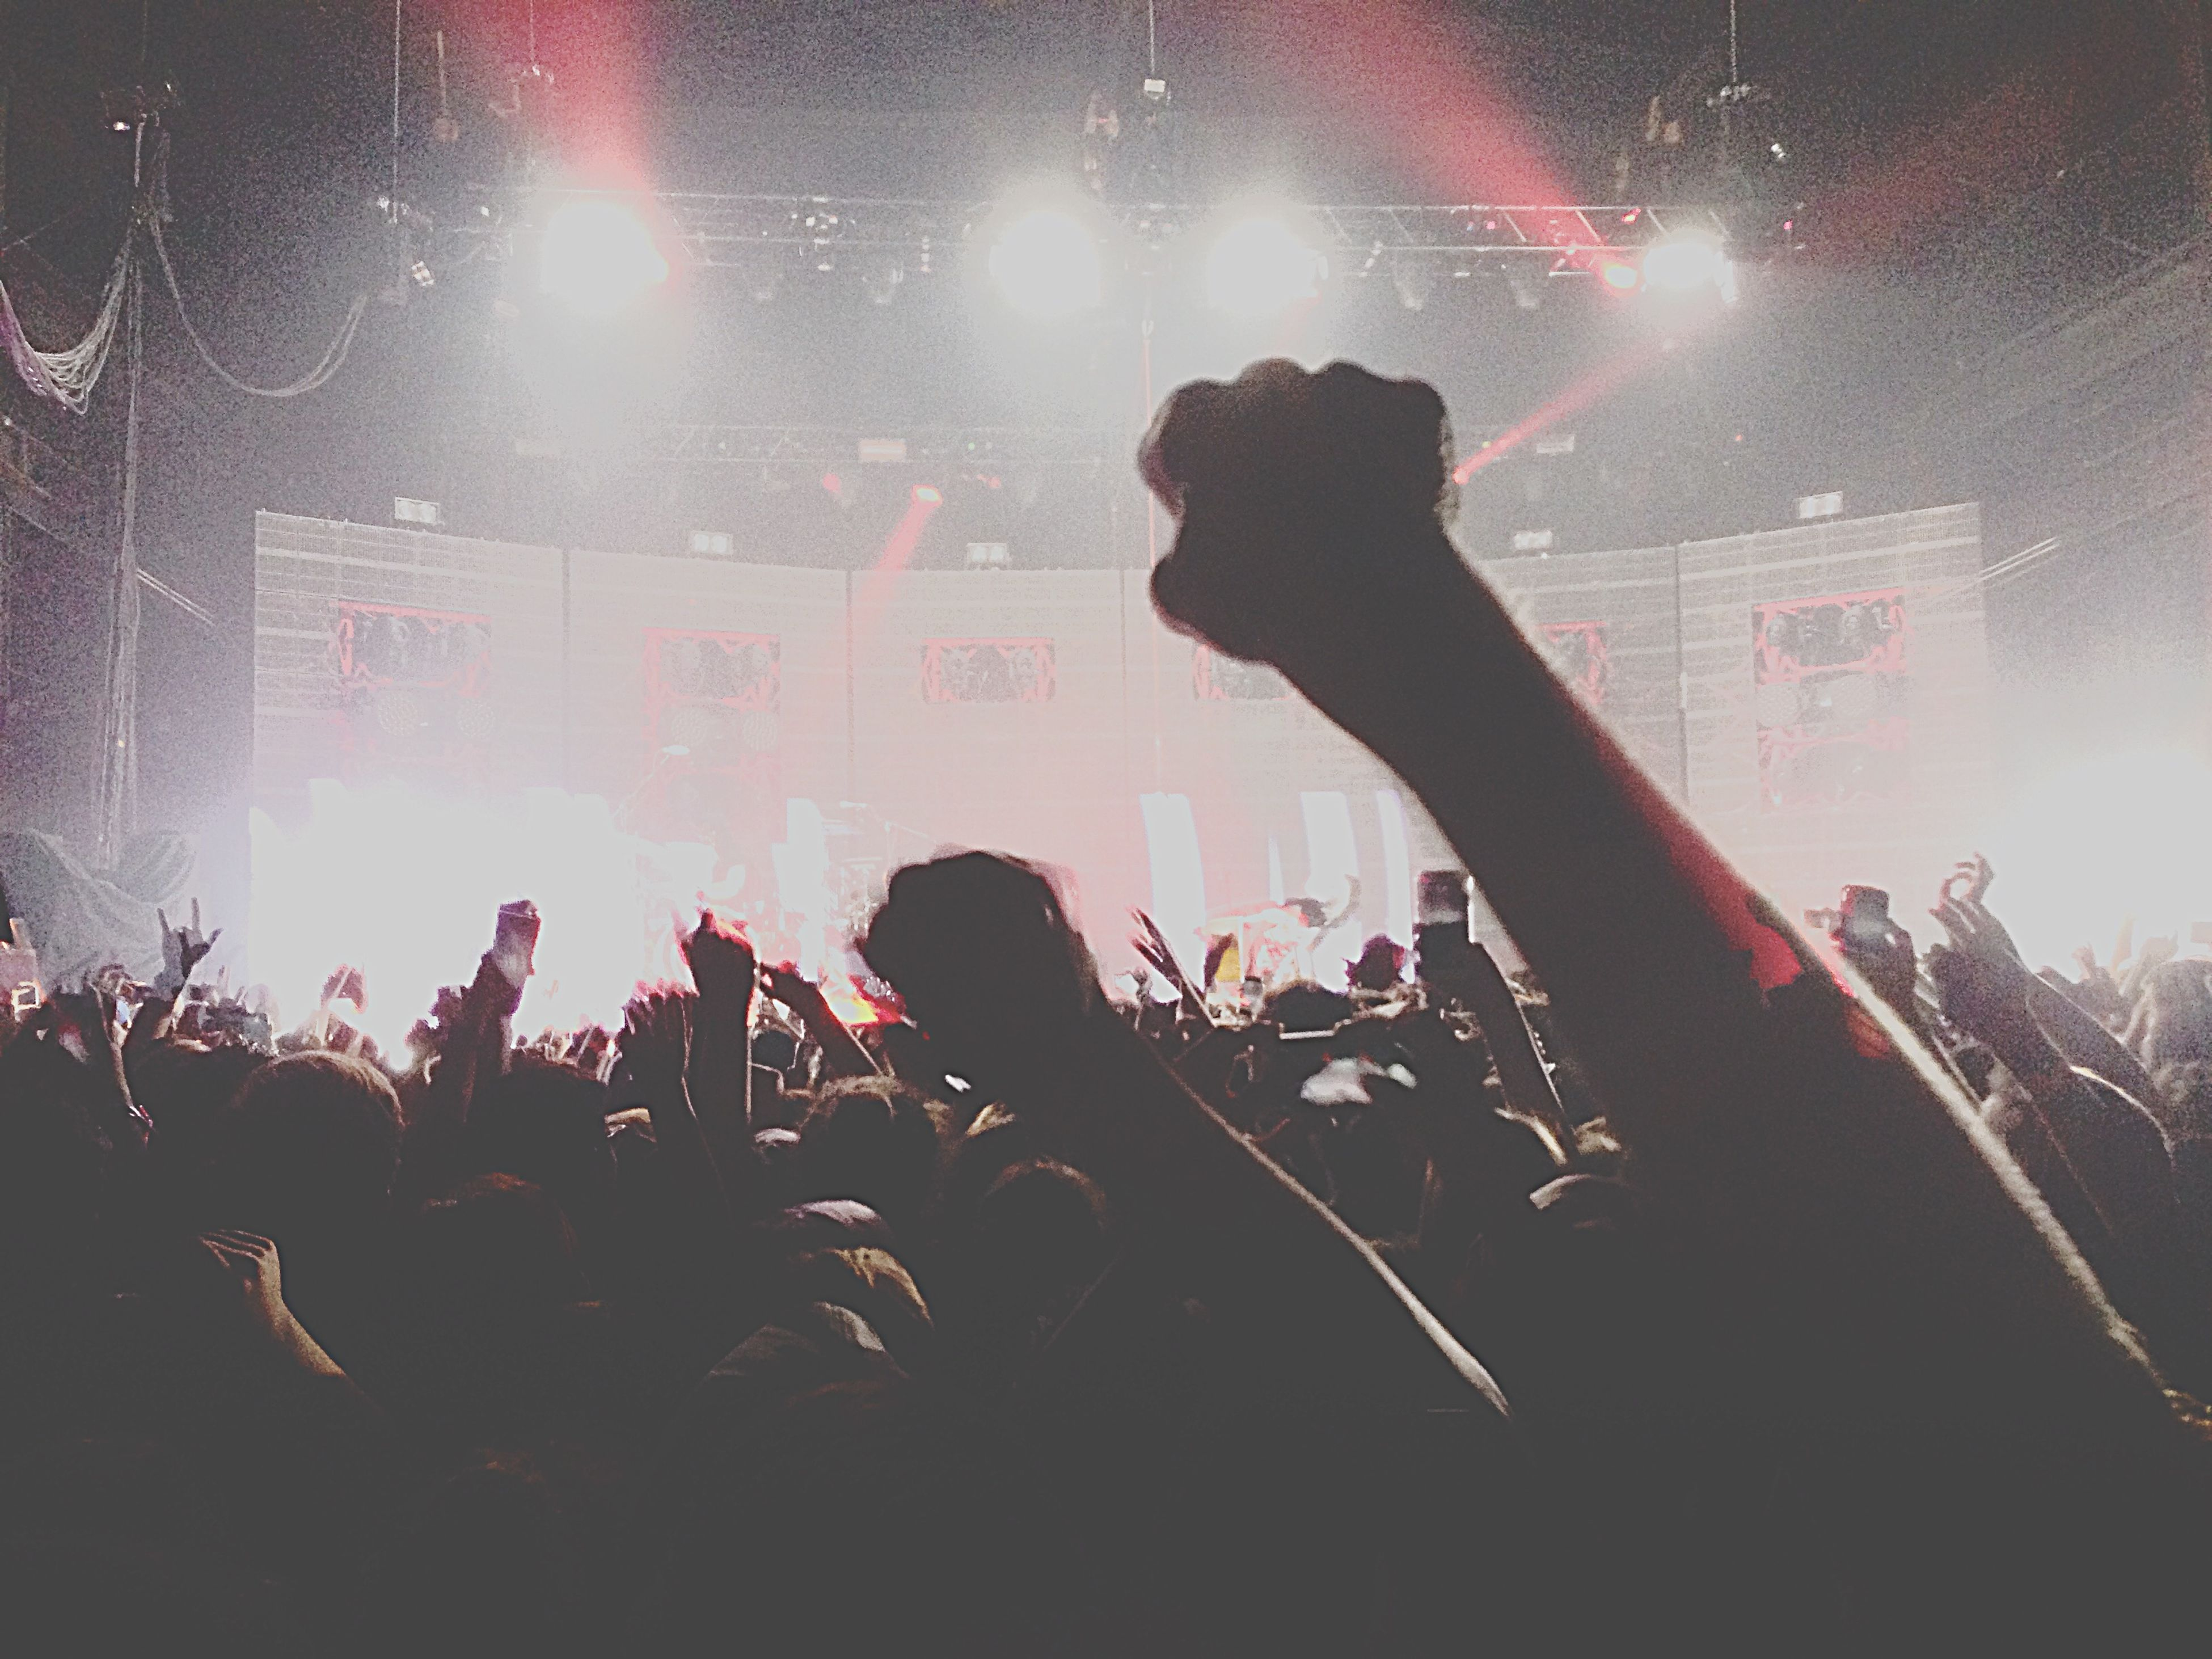 illuminated, lifestyles, arts culture and entertainment, night, leisure activity, large group of people, enjoyment, performance, music, nightlife, crowd, men, fun, event, youth culture, celebration, music festival, person, togetherness